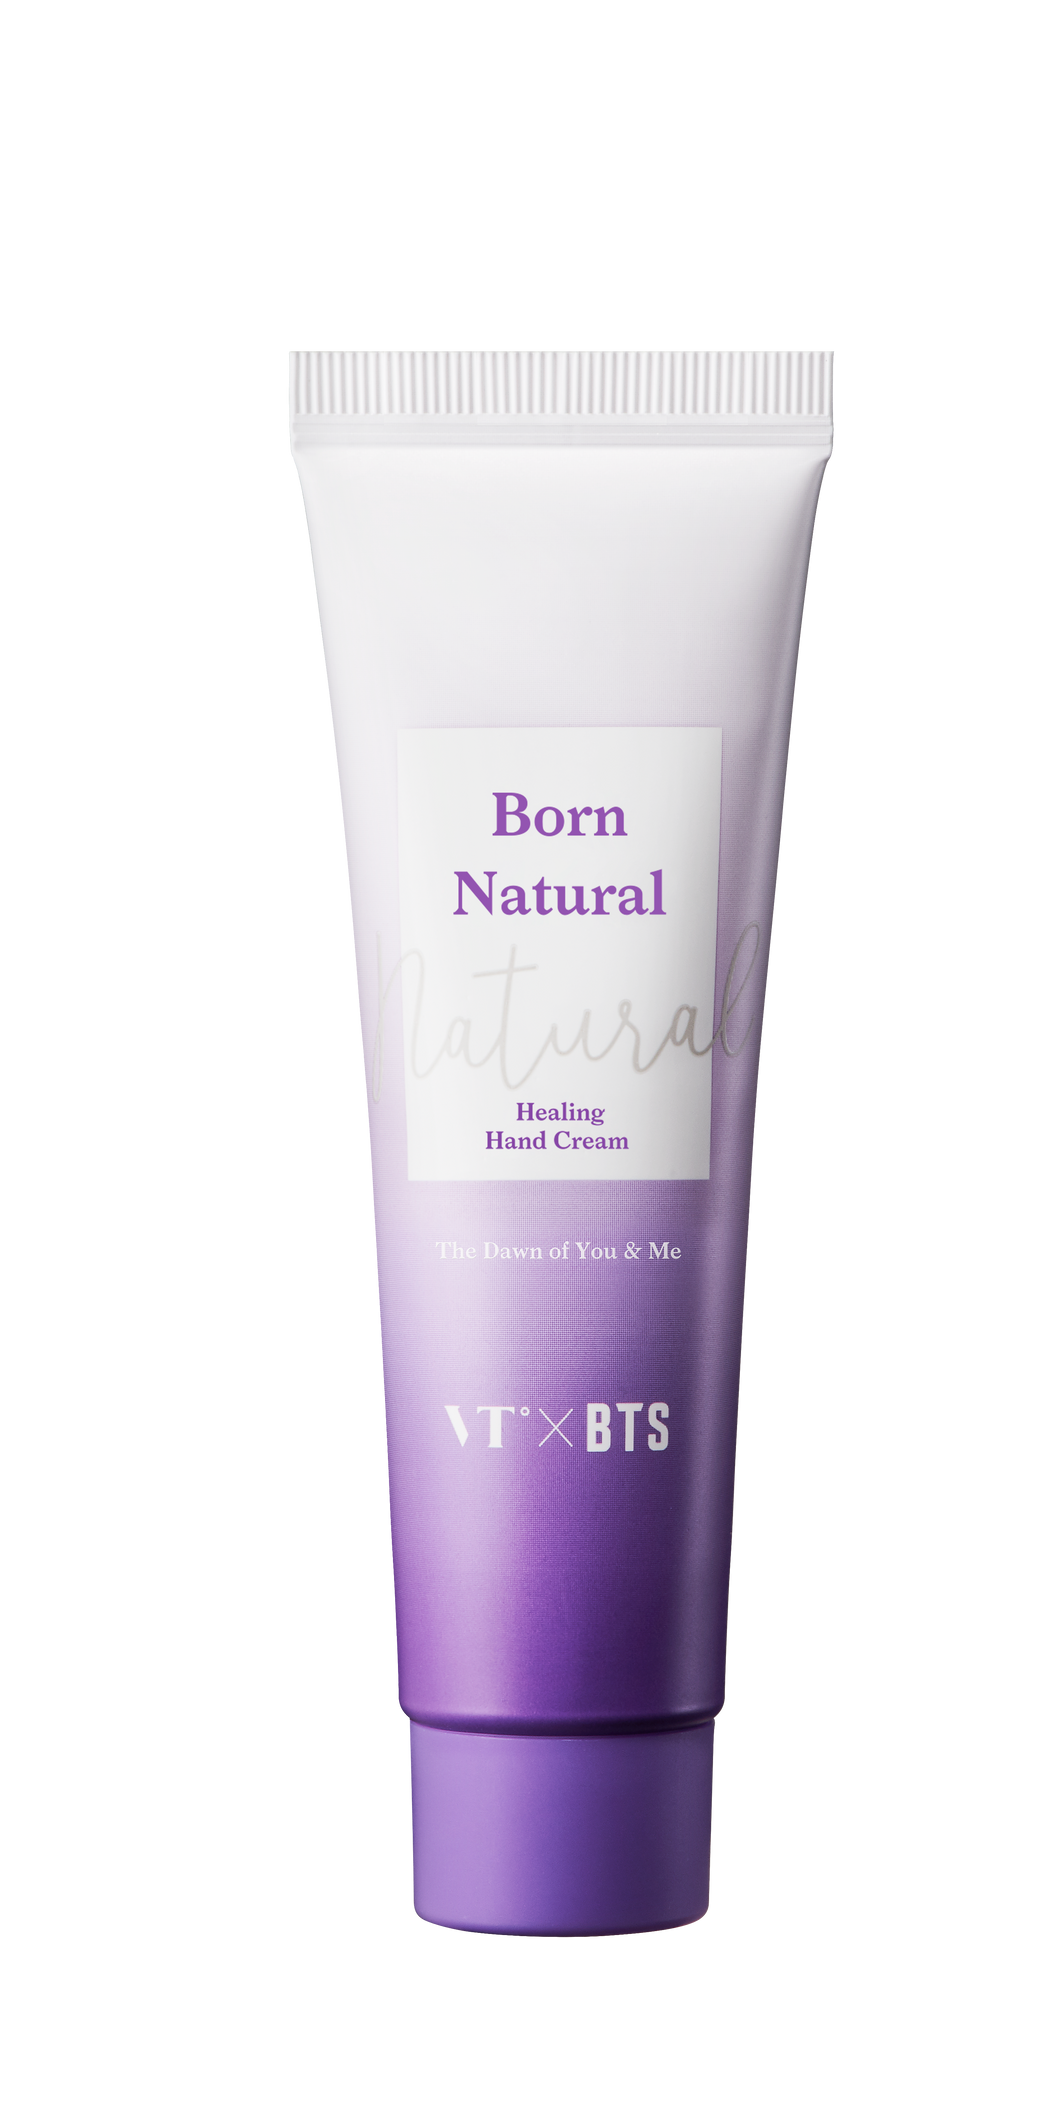 VT x BTS Born Natural Healing Hand Cream The Dawn of You & Me